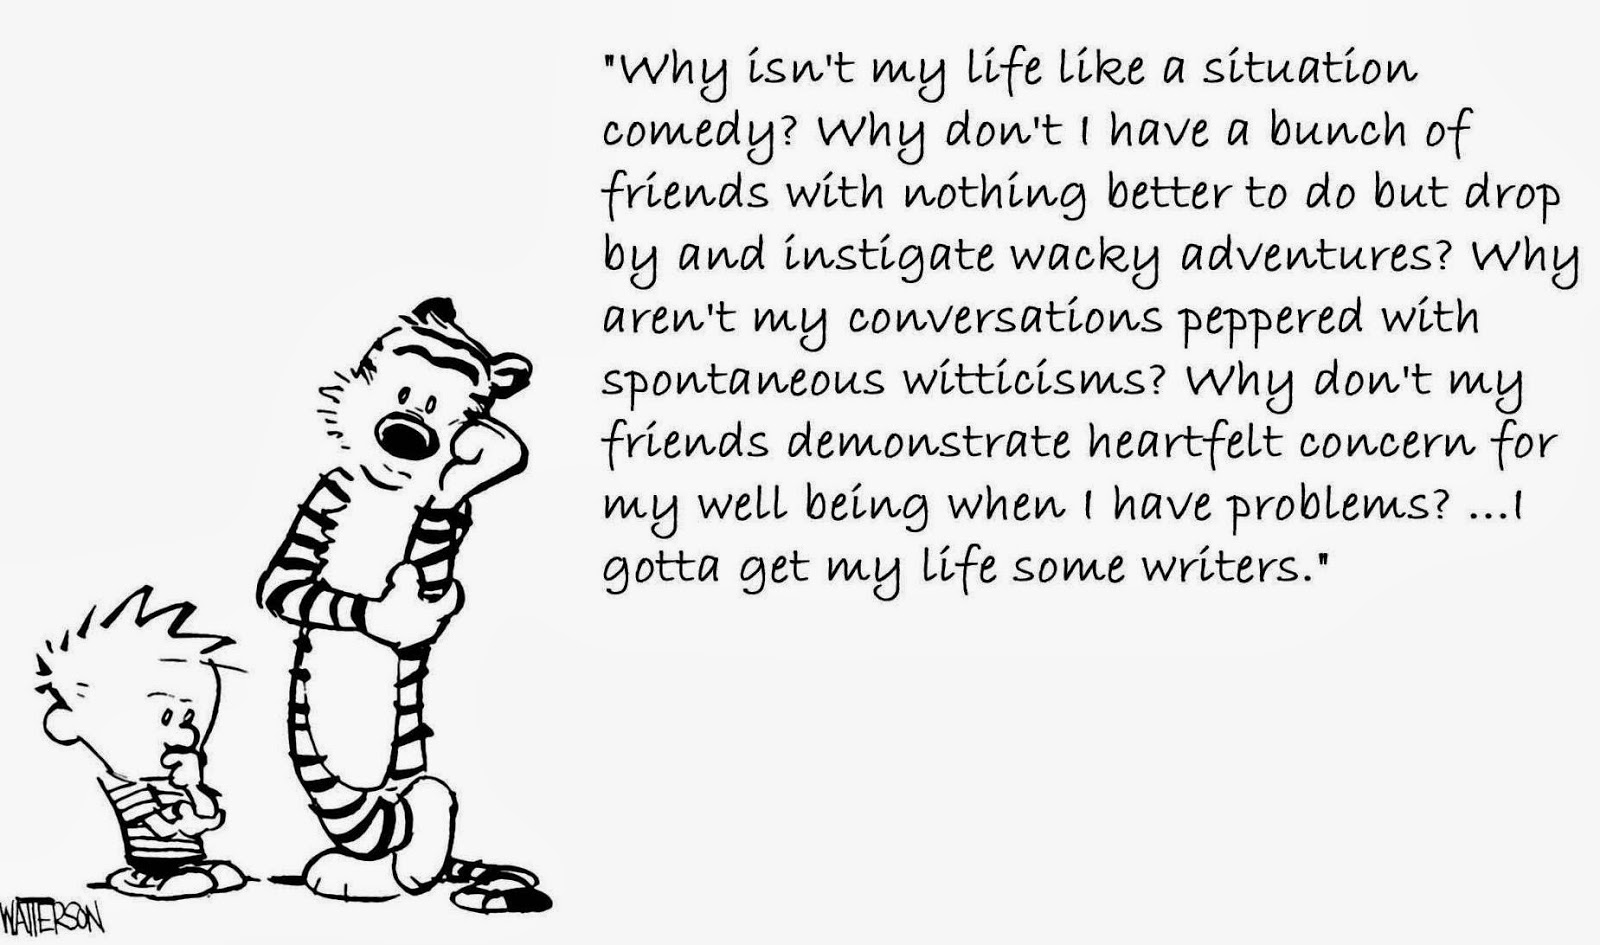 life laughs from calvin and hobbes